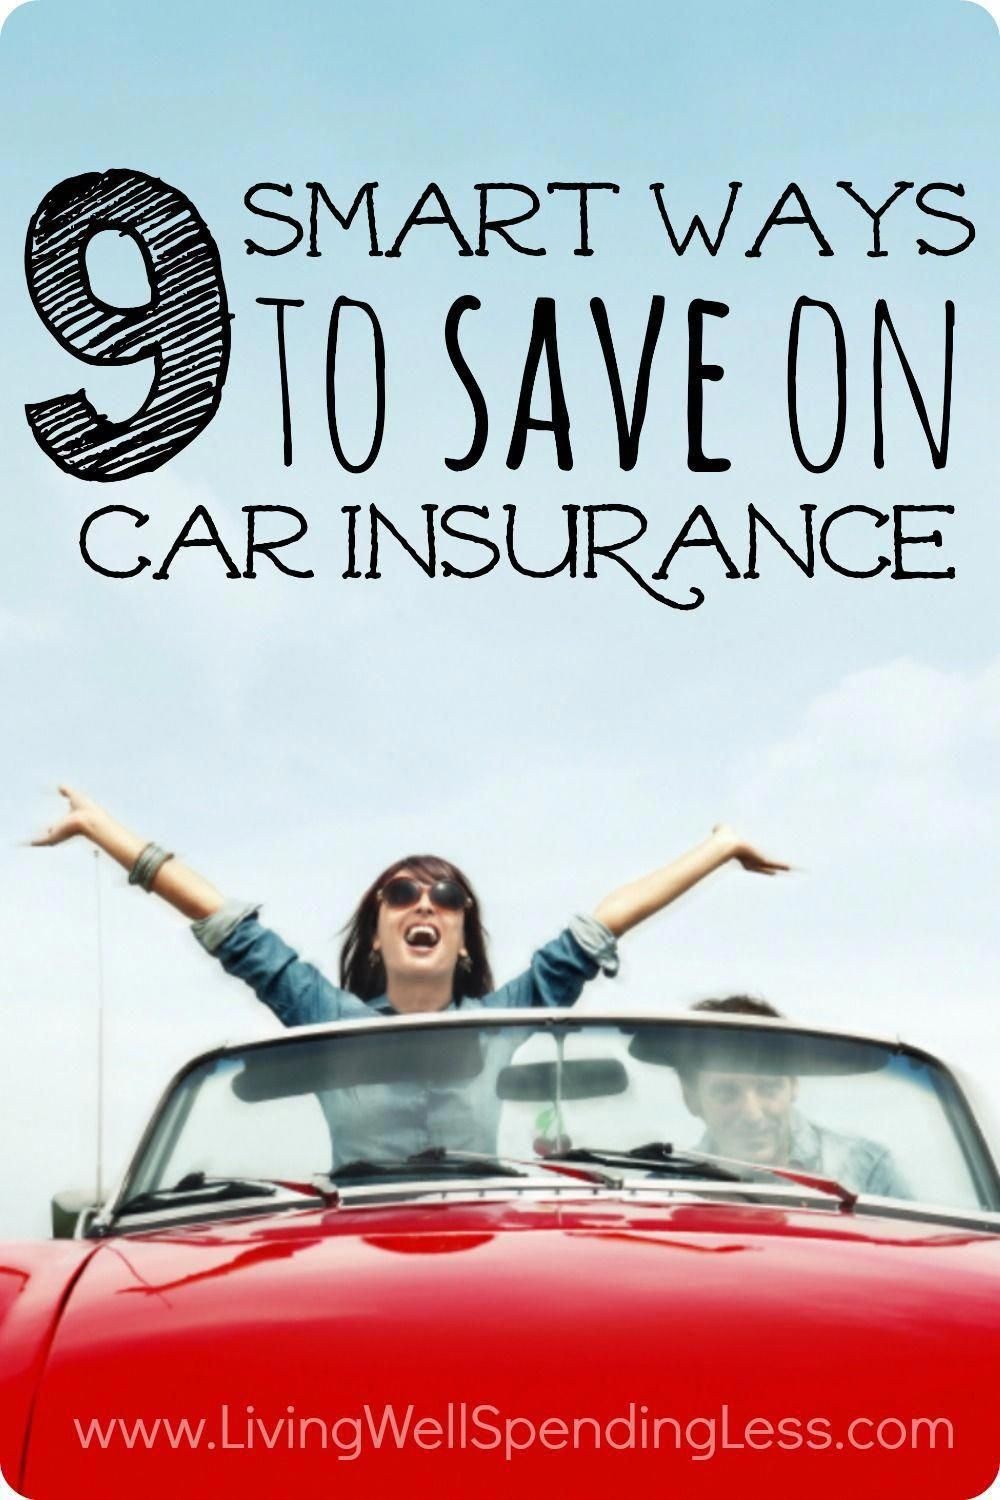 9 Smart Ways to Save on Car Insurance | Living Well Spending Less